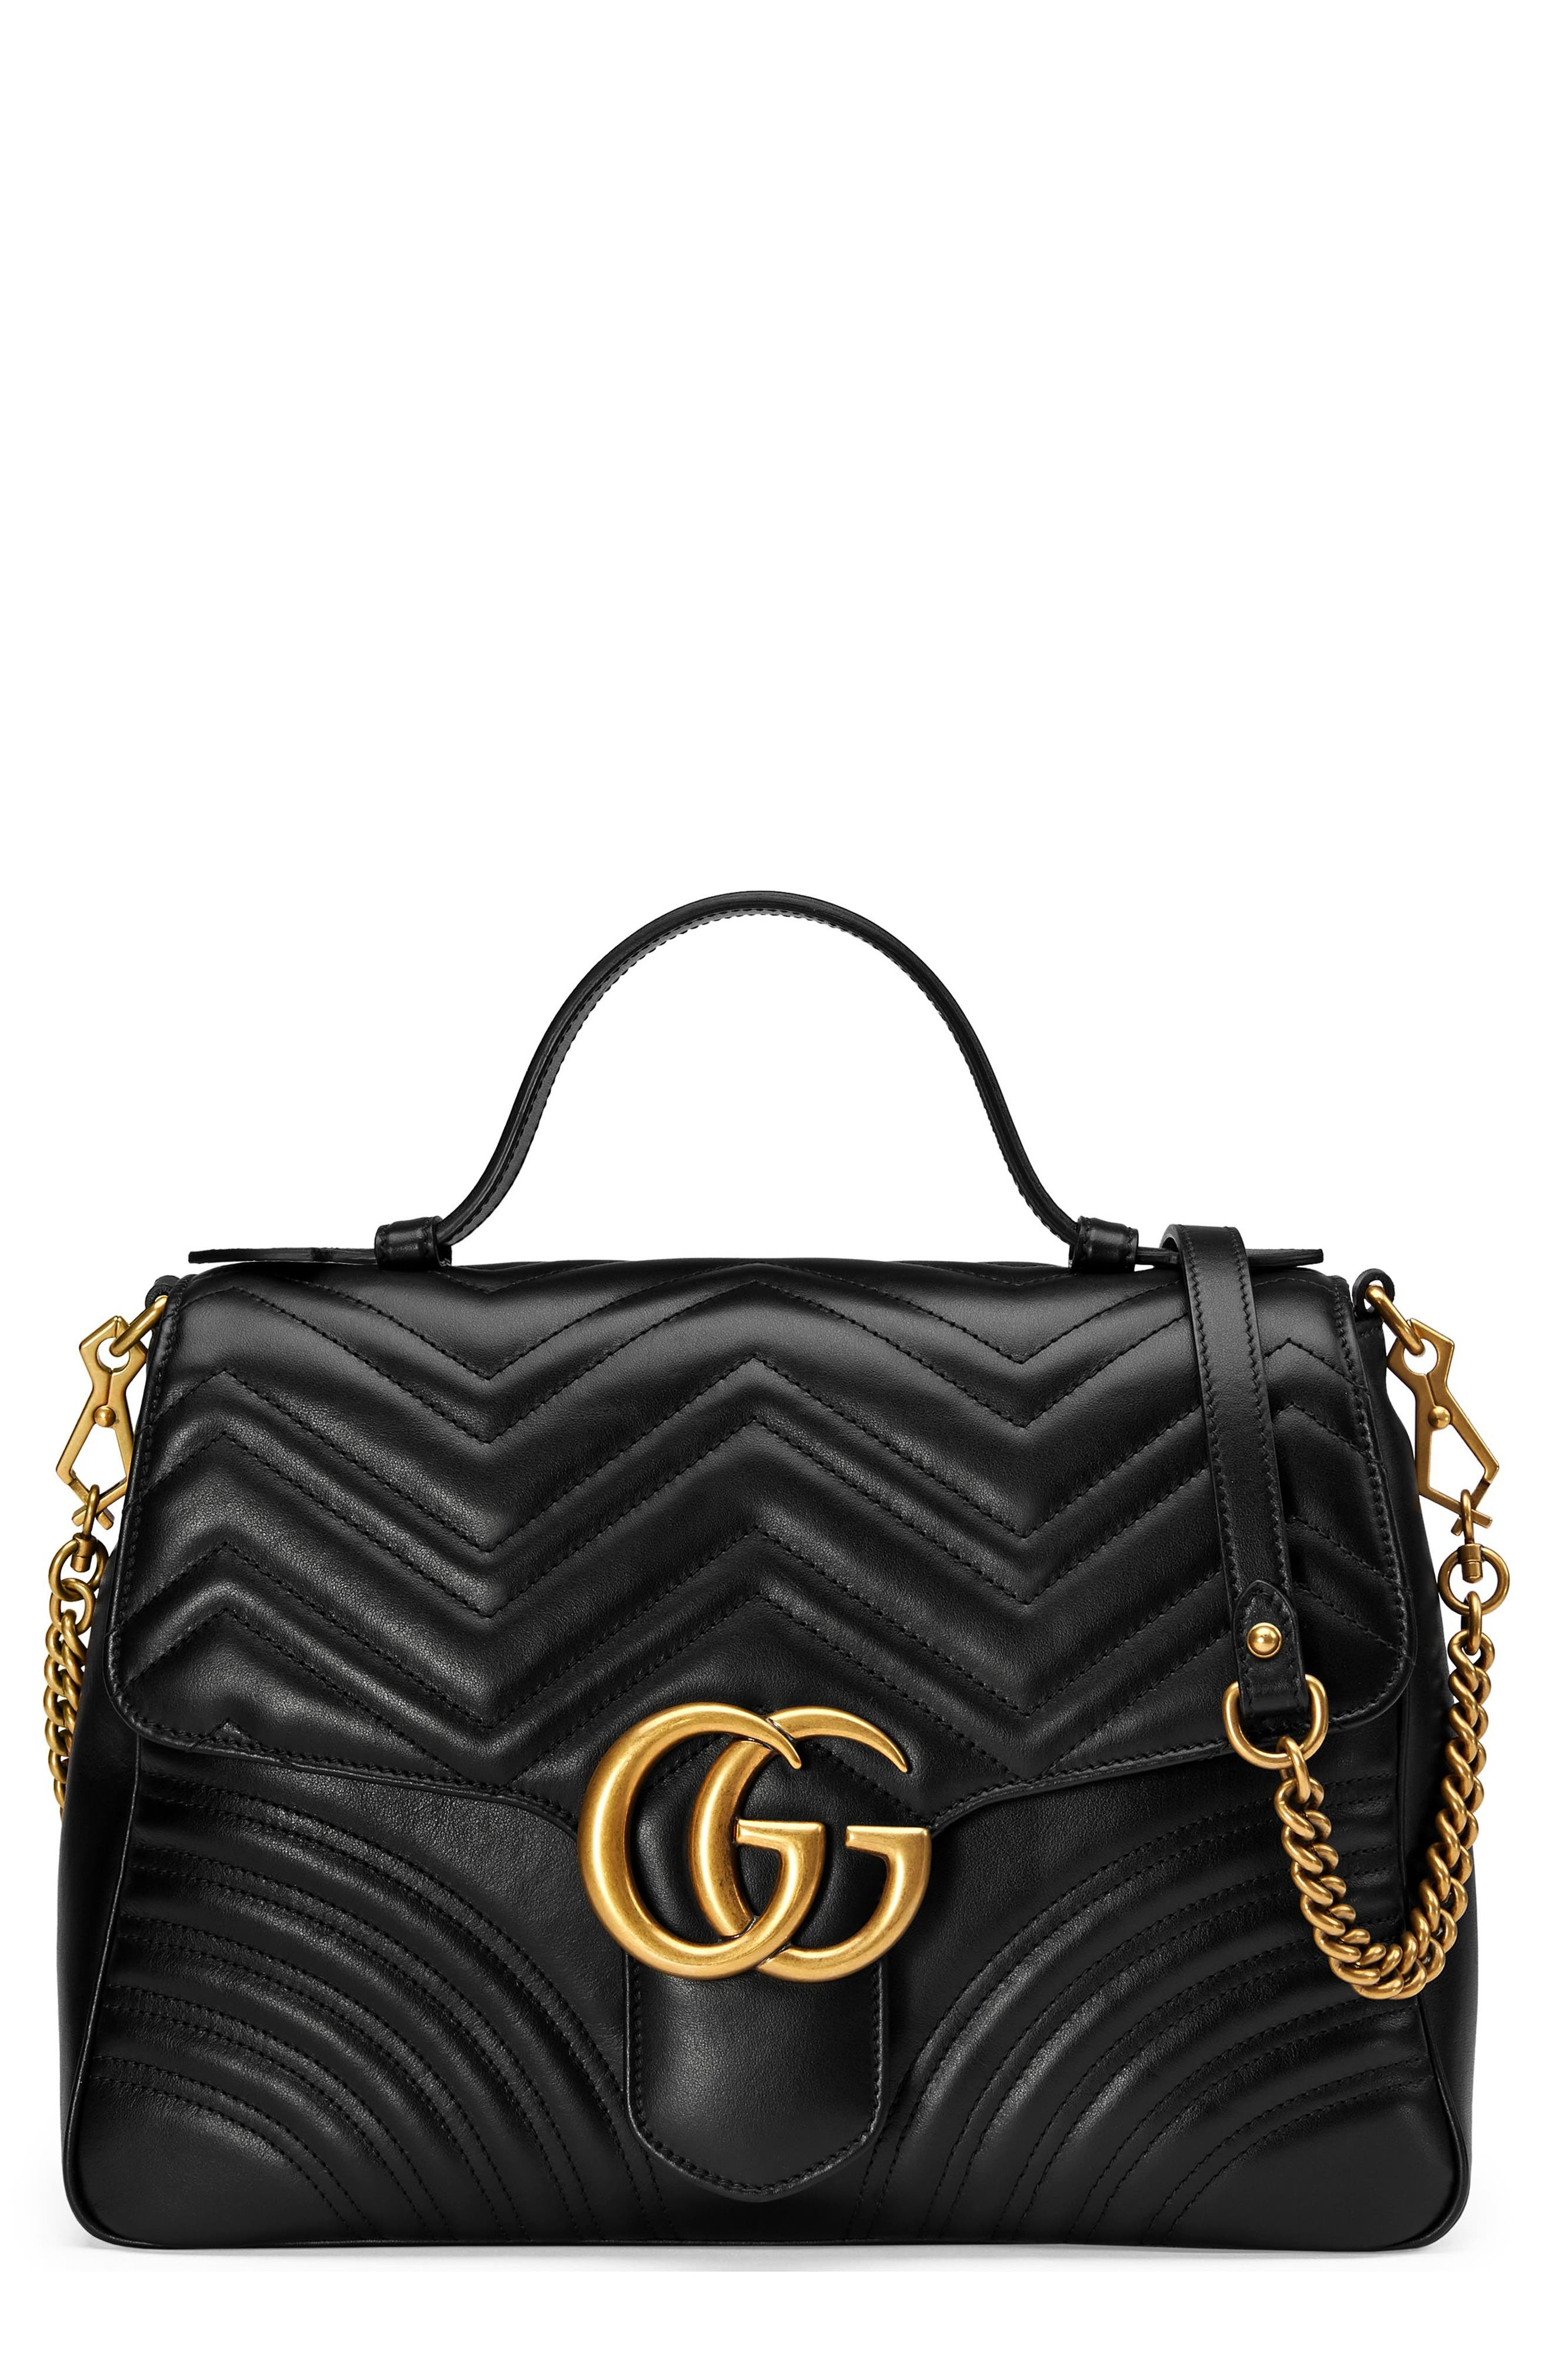 Medium GG Marmont 2.0 Matelassé Leather Top Handle Bag,                             Main thumbnail 1, color,                             005